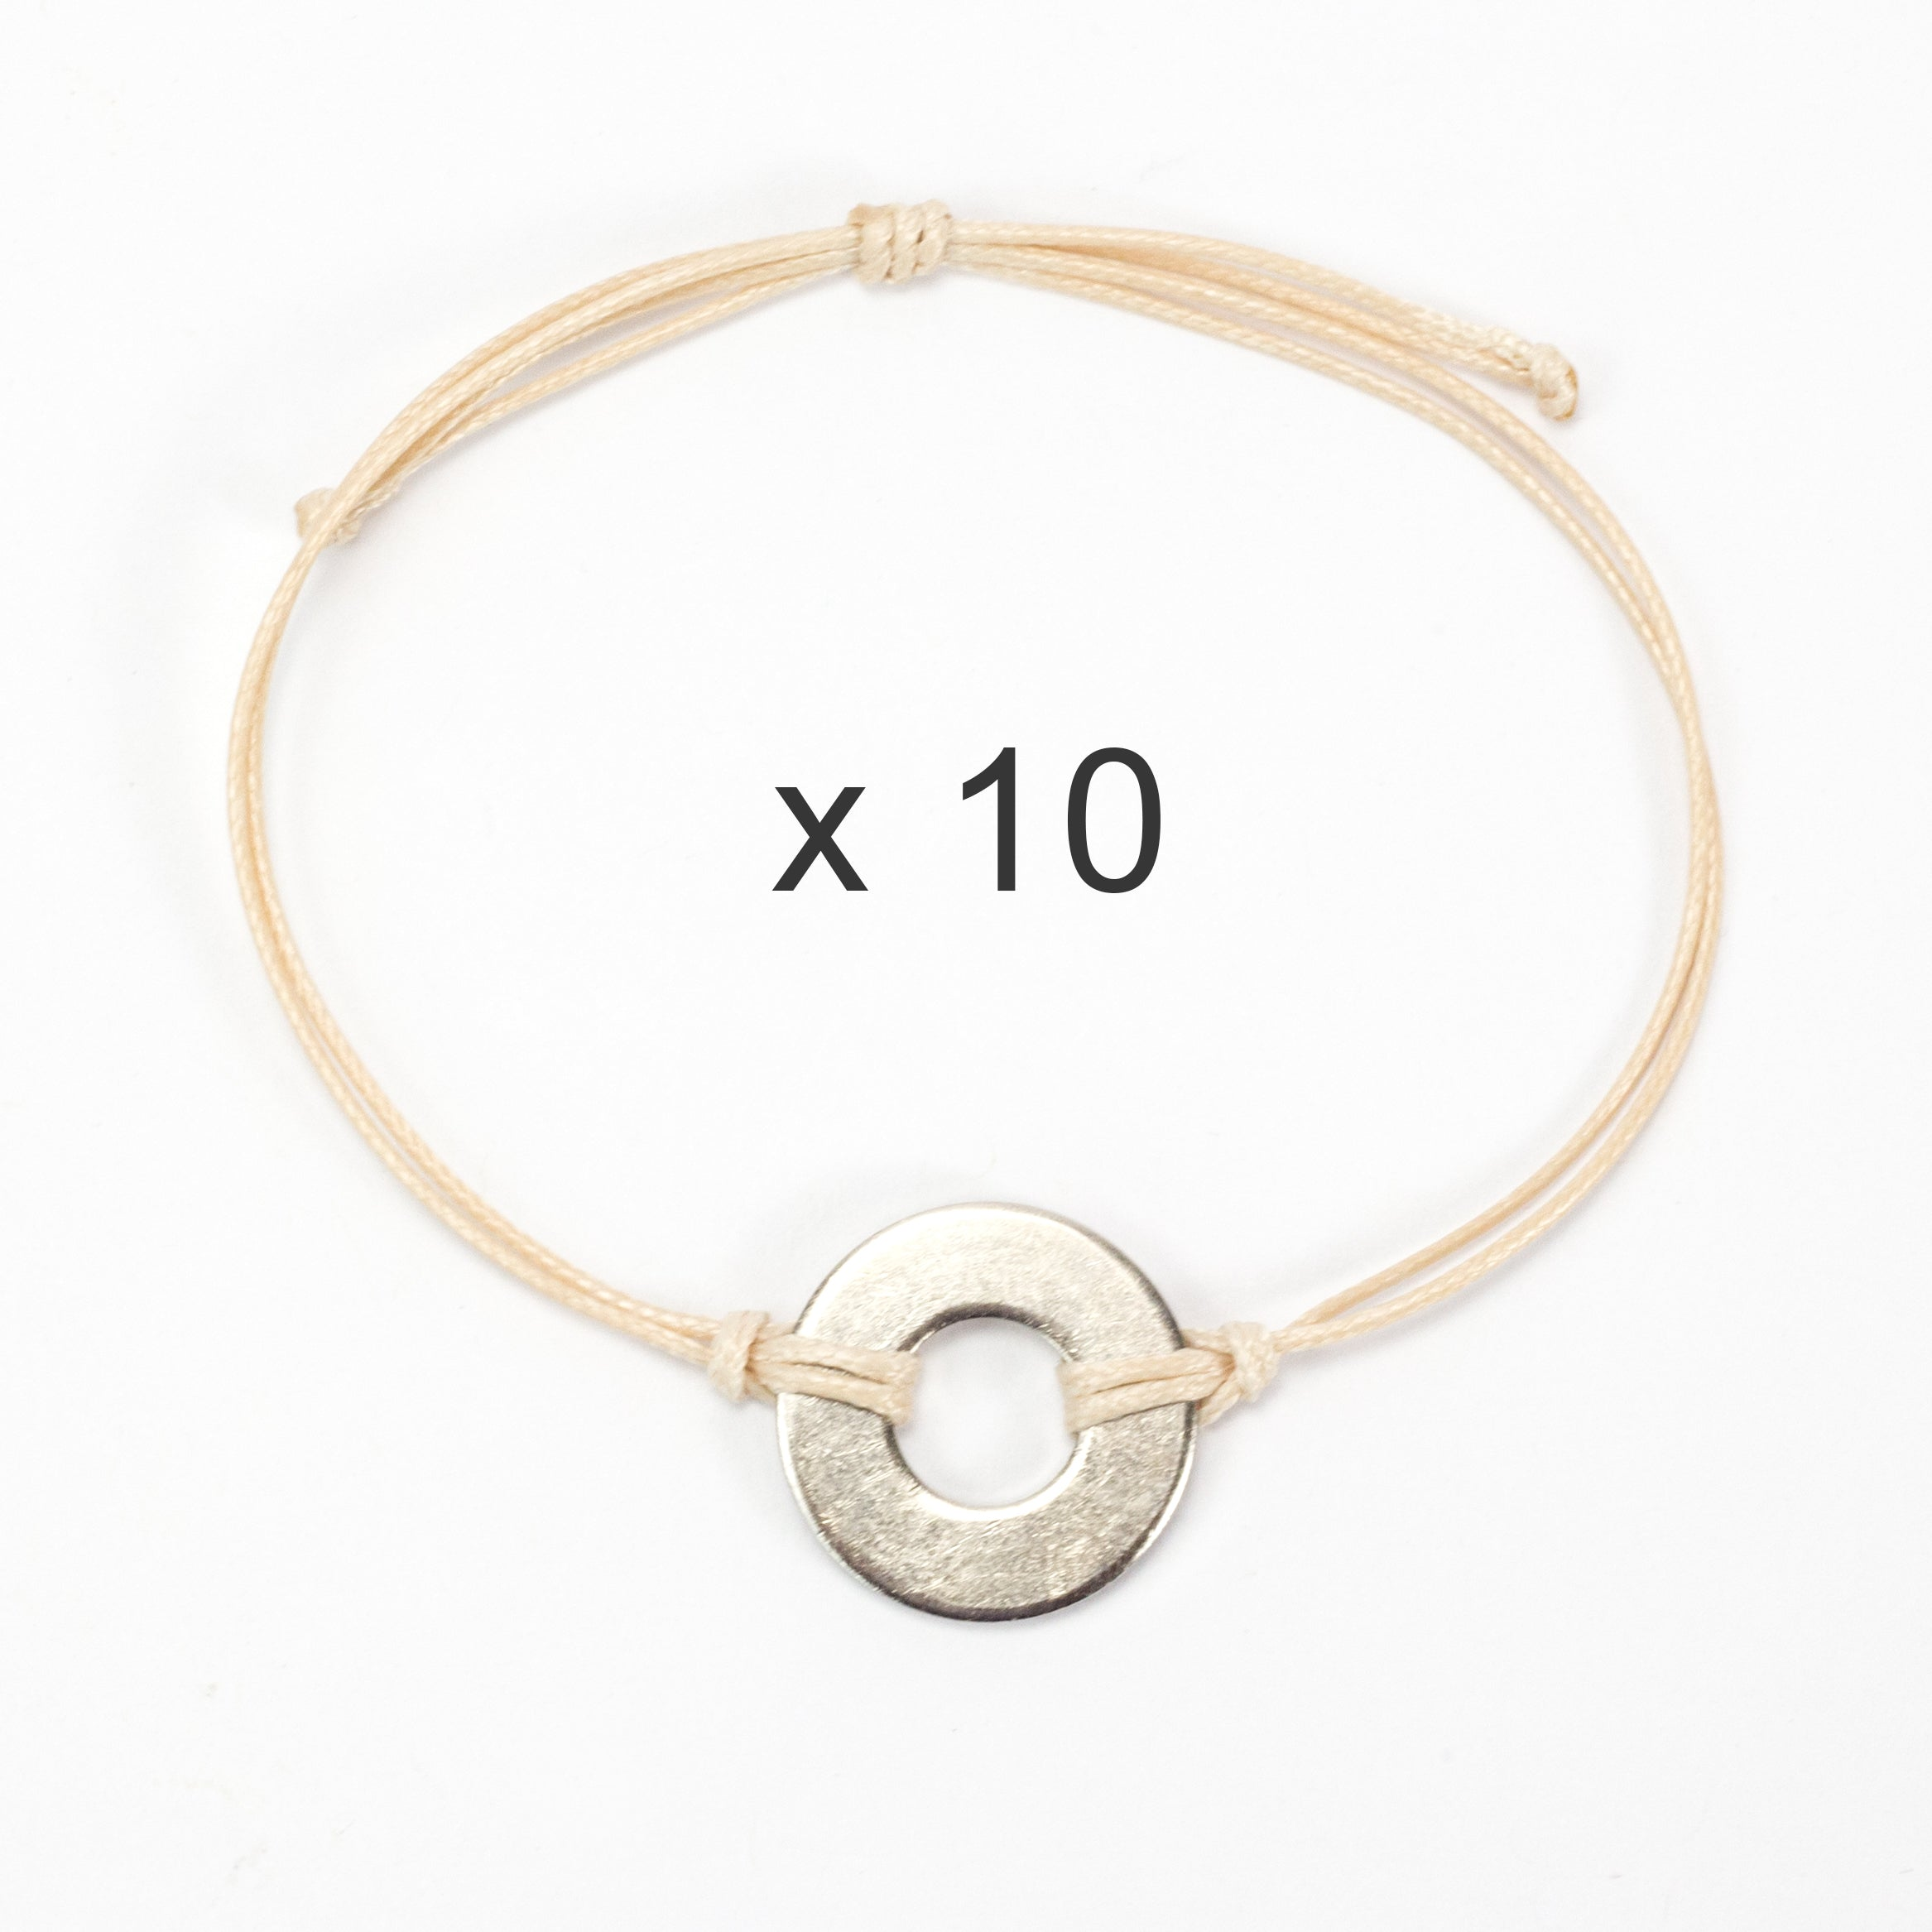 MyIntent Refill Classic Bracelets Cream String set of 10 with Nickel tokens